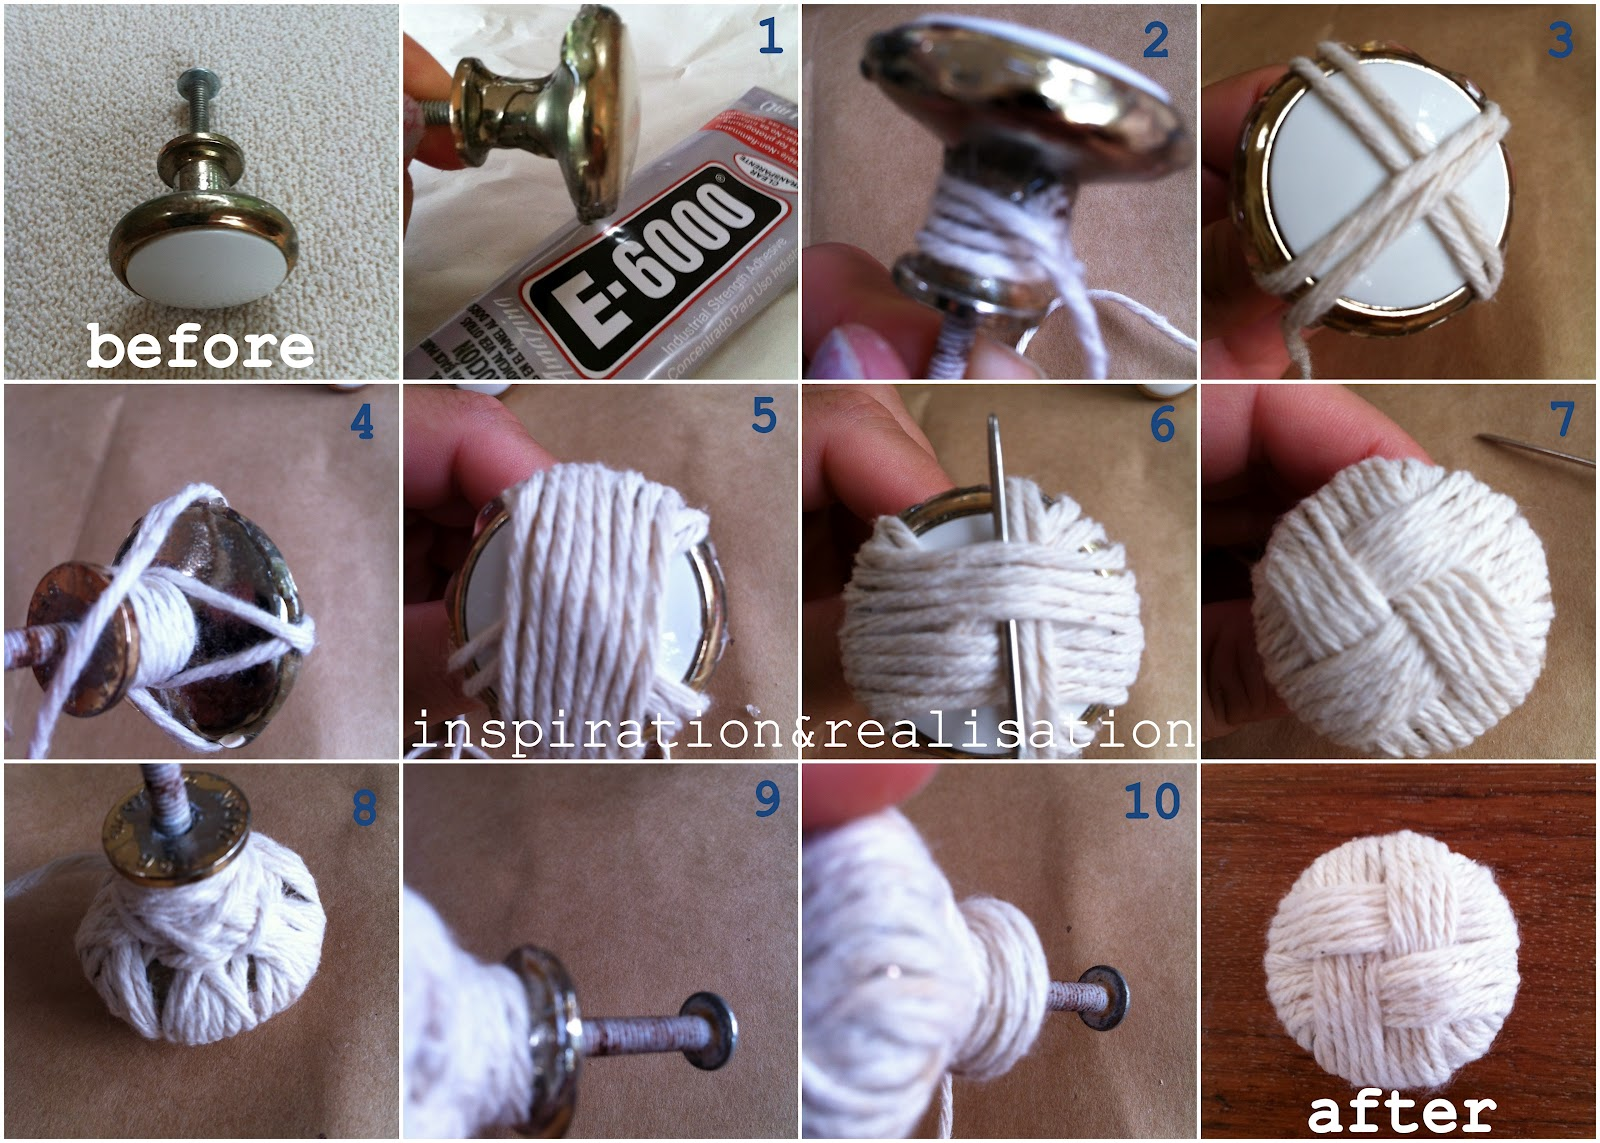 Diy Cabinet Knobs Inspiration And Realisation Diy Fashion Blog Diy Knotted Knobs